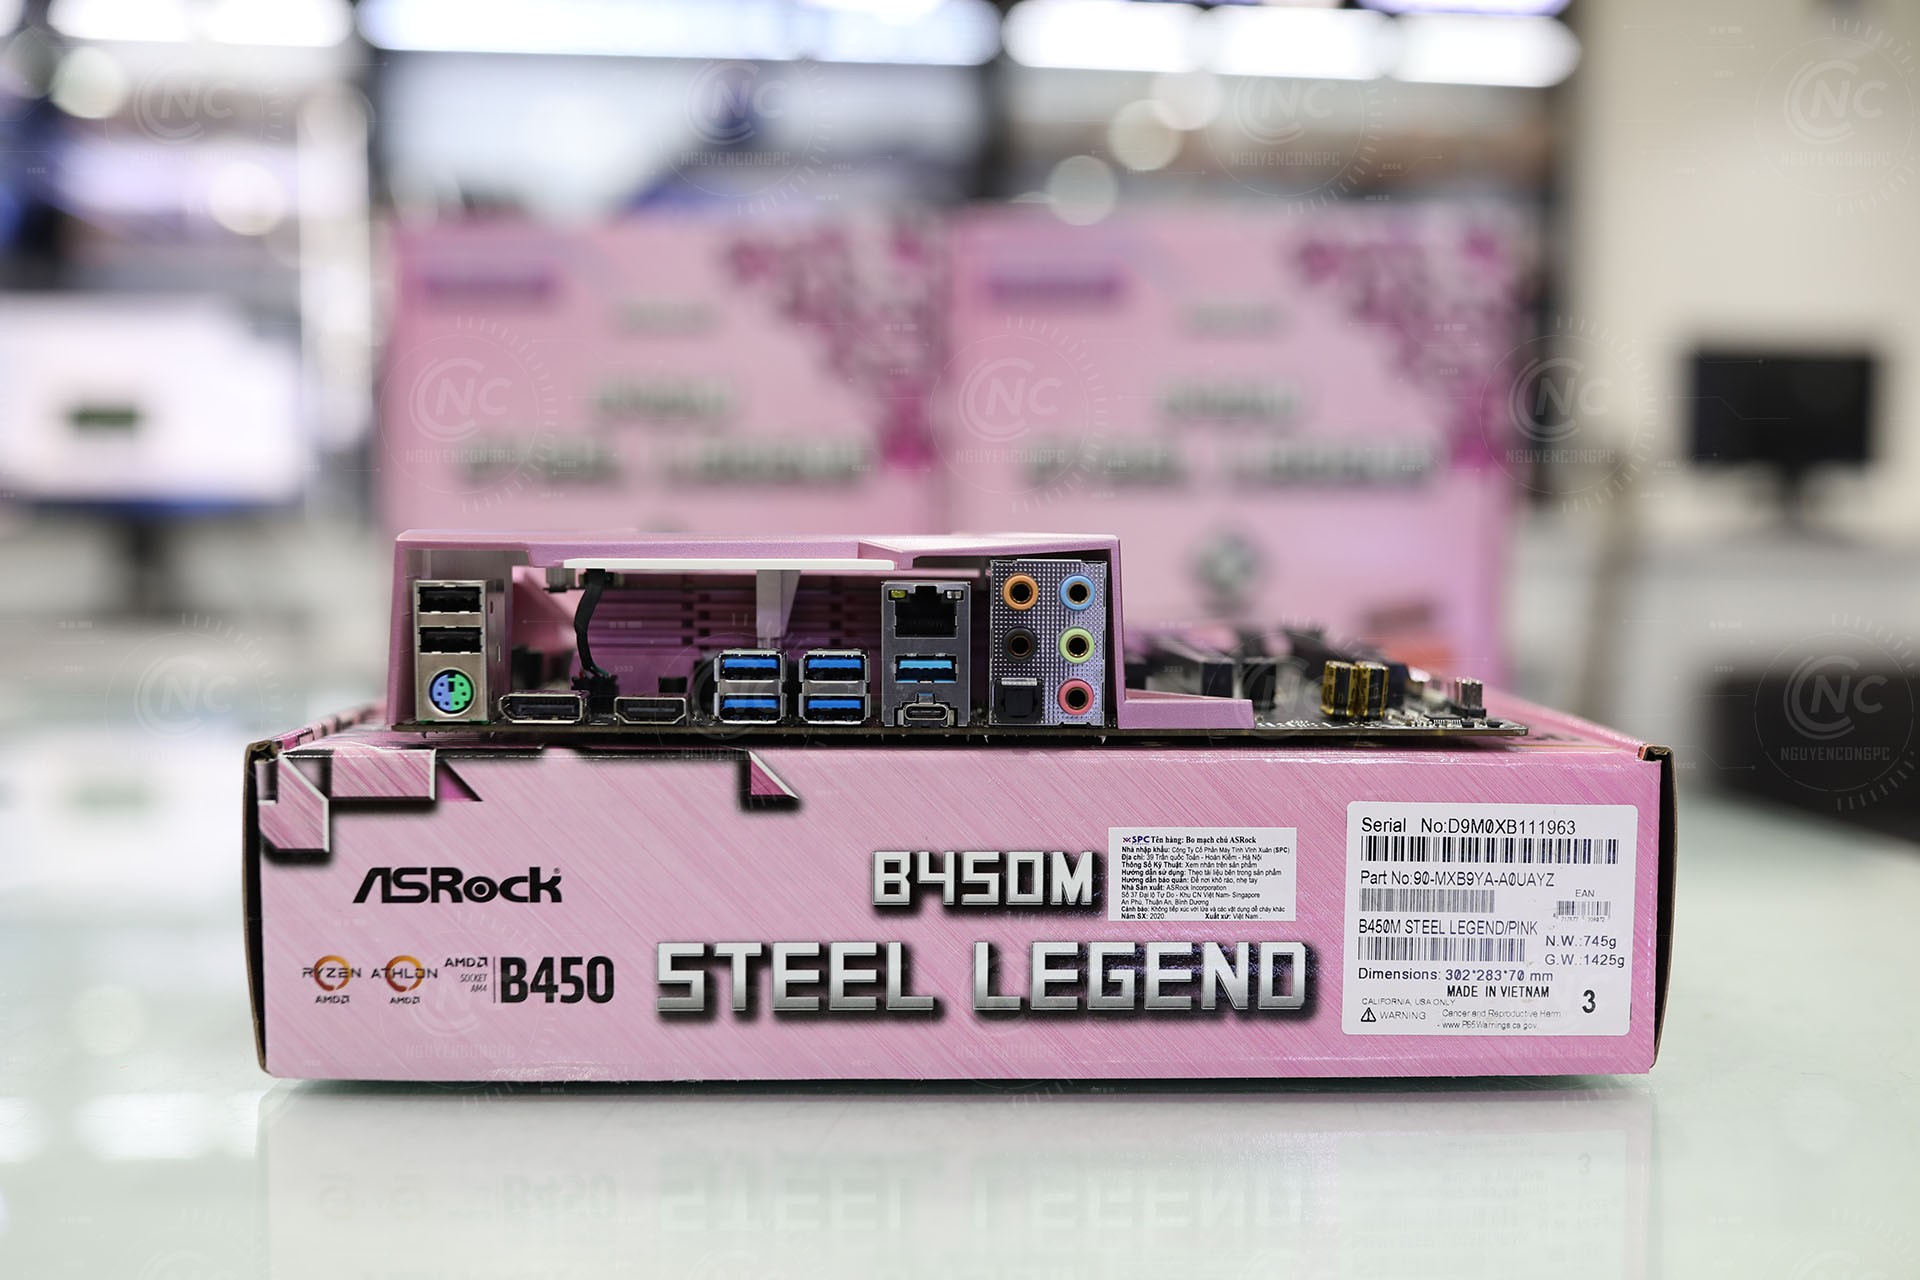 mainboard-asrock-b450m-steel-legend-pink-edition-8